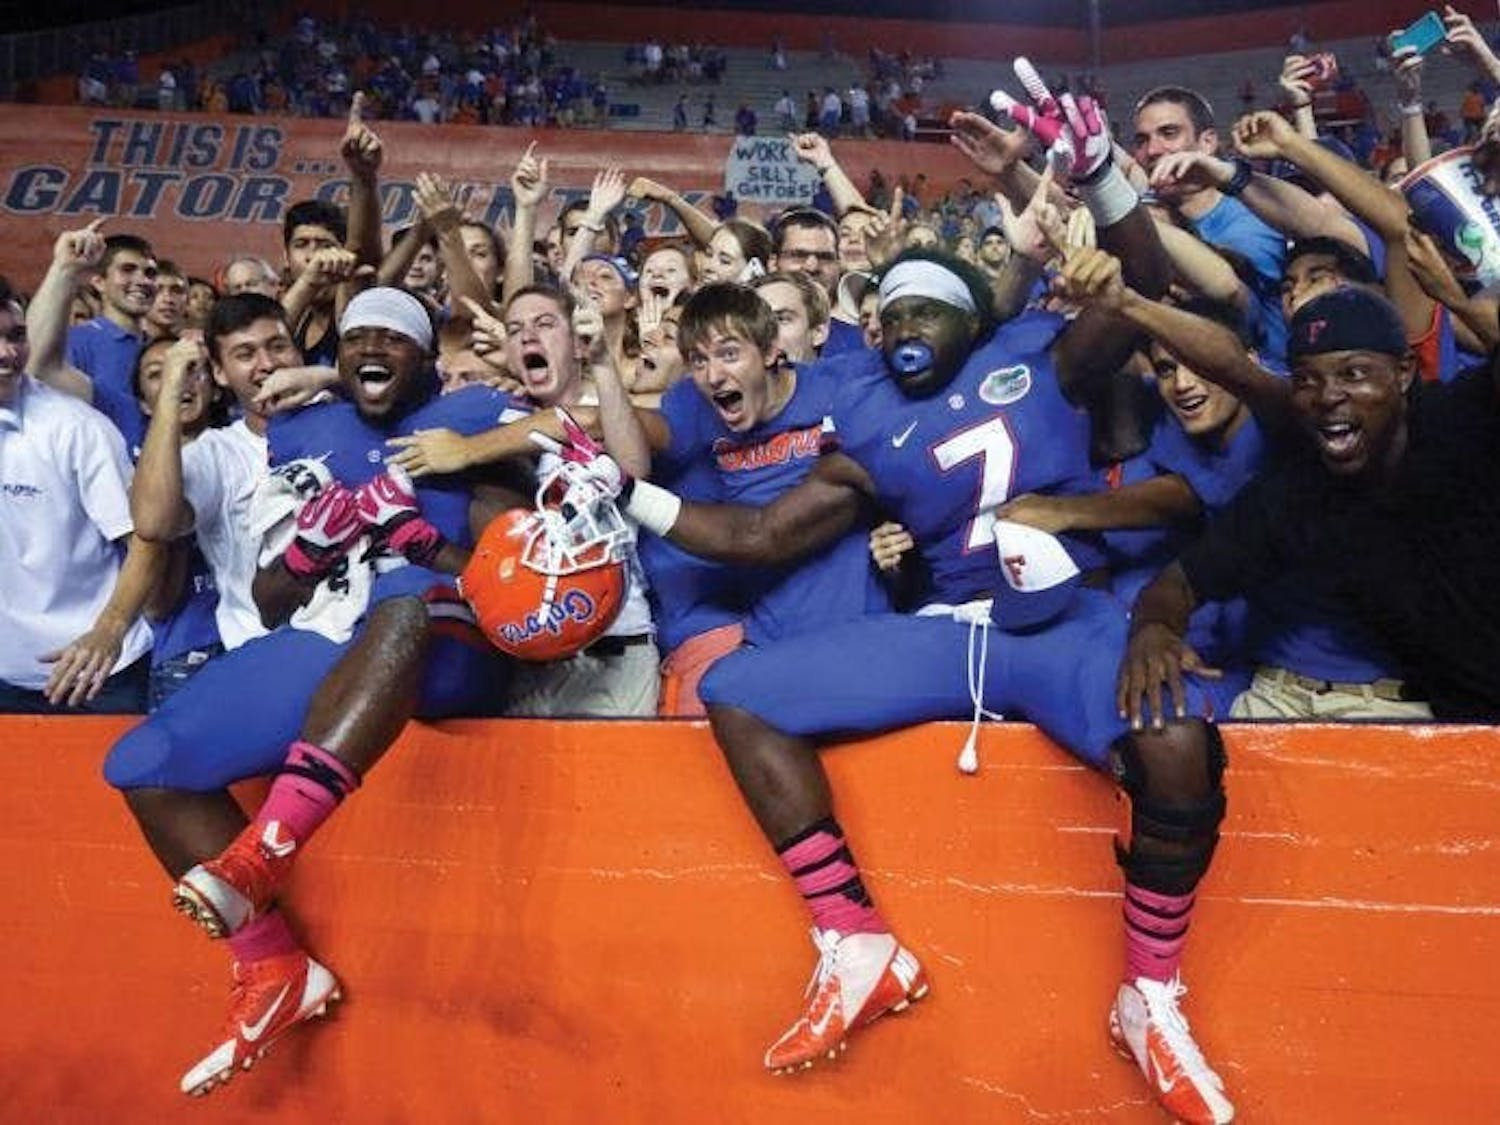 Florida football players celebrate with fans. The Swamp will see full attendance return in 2021